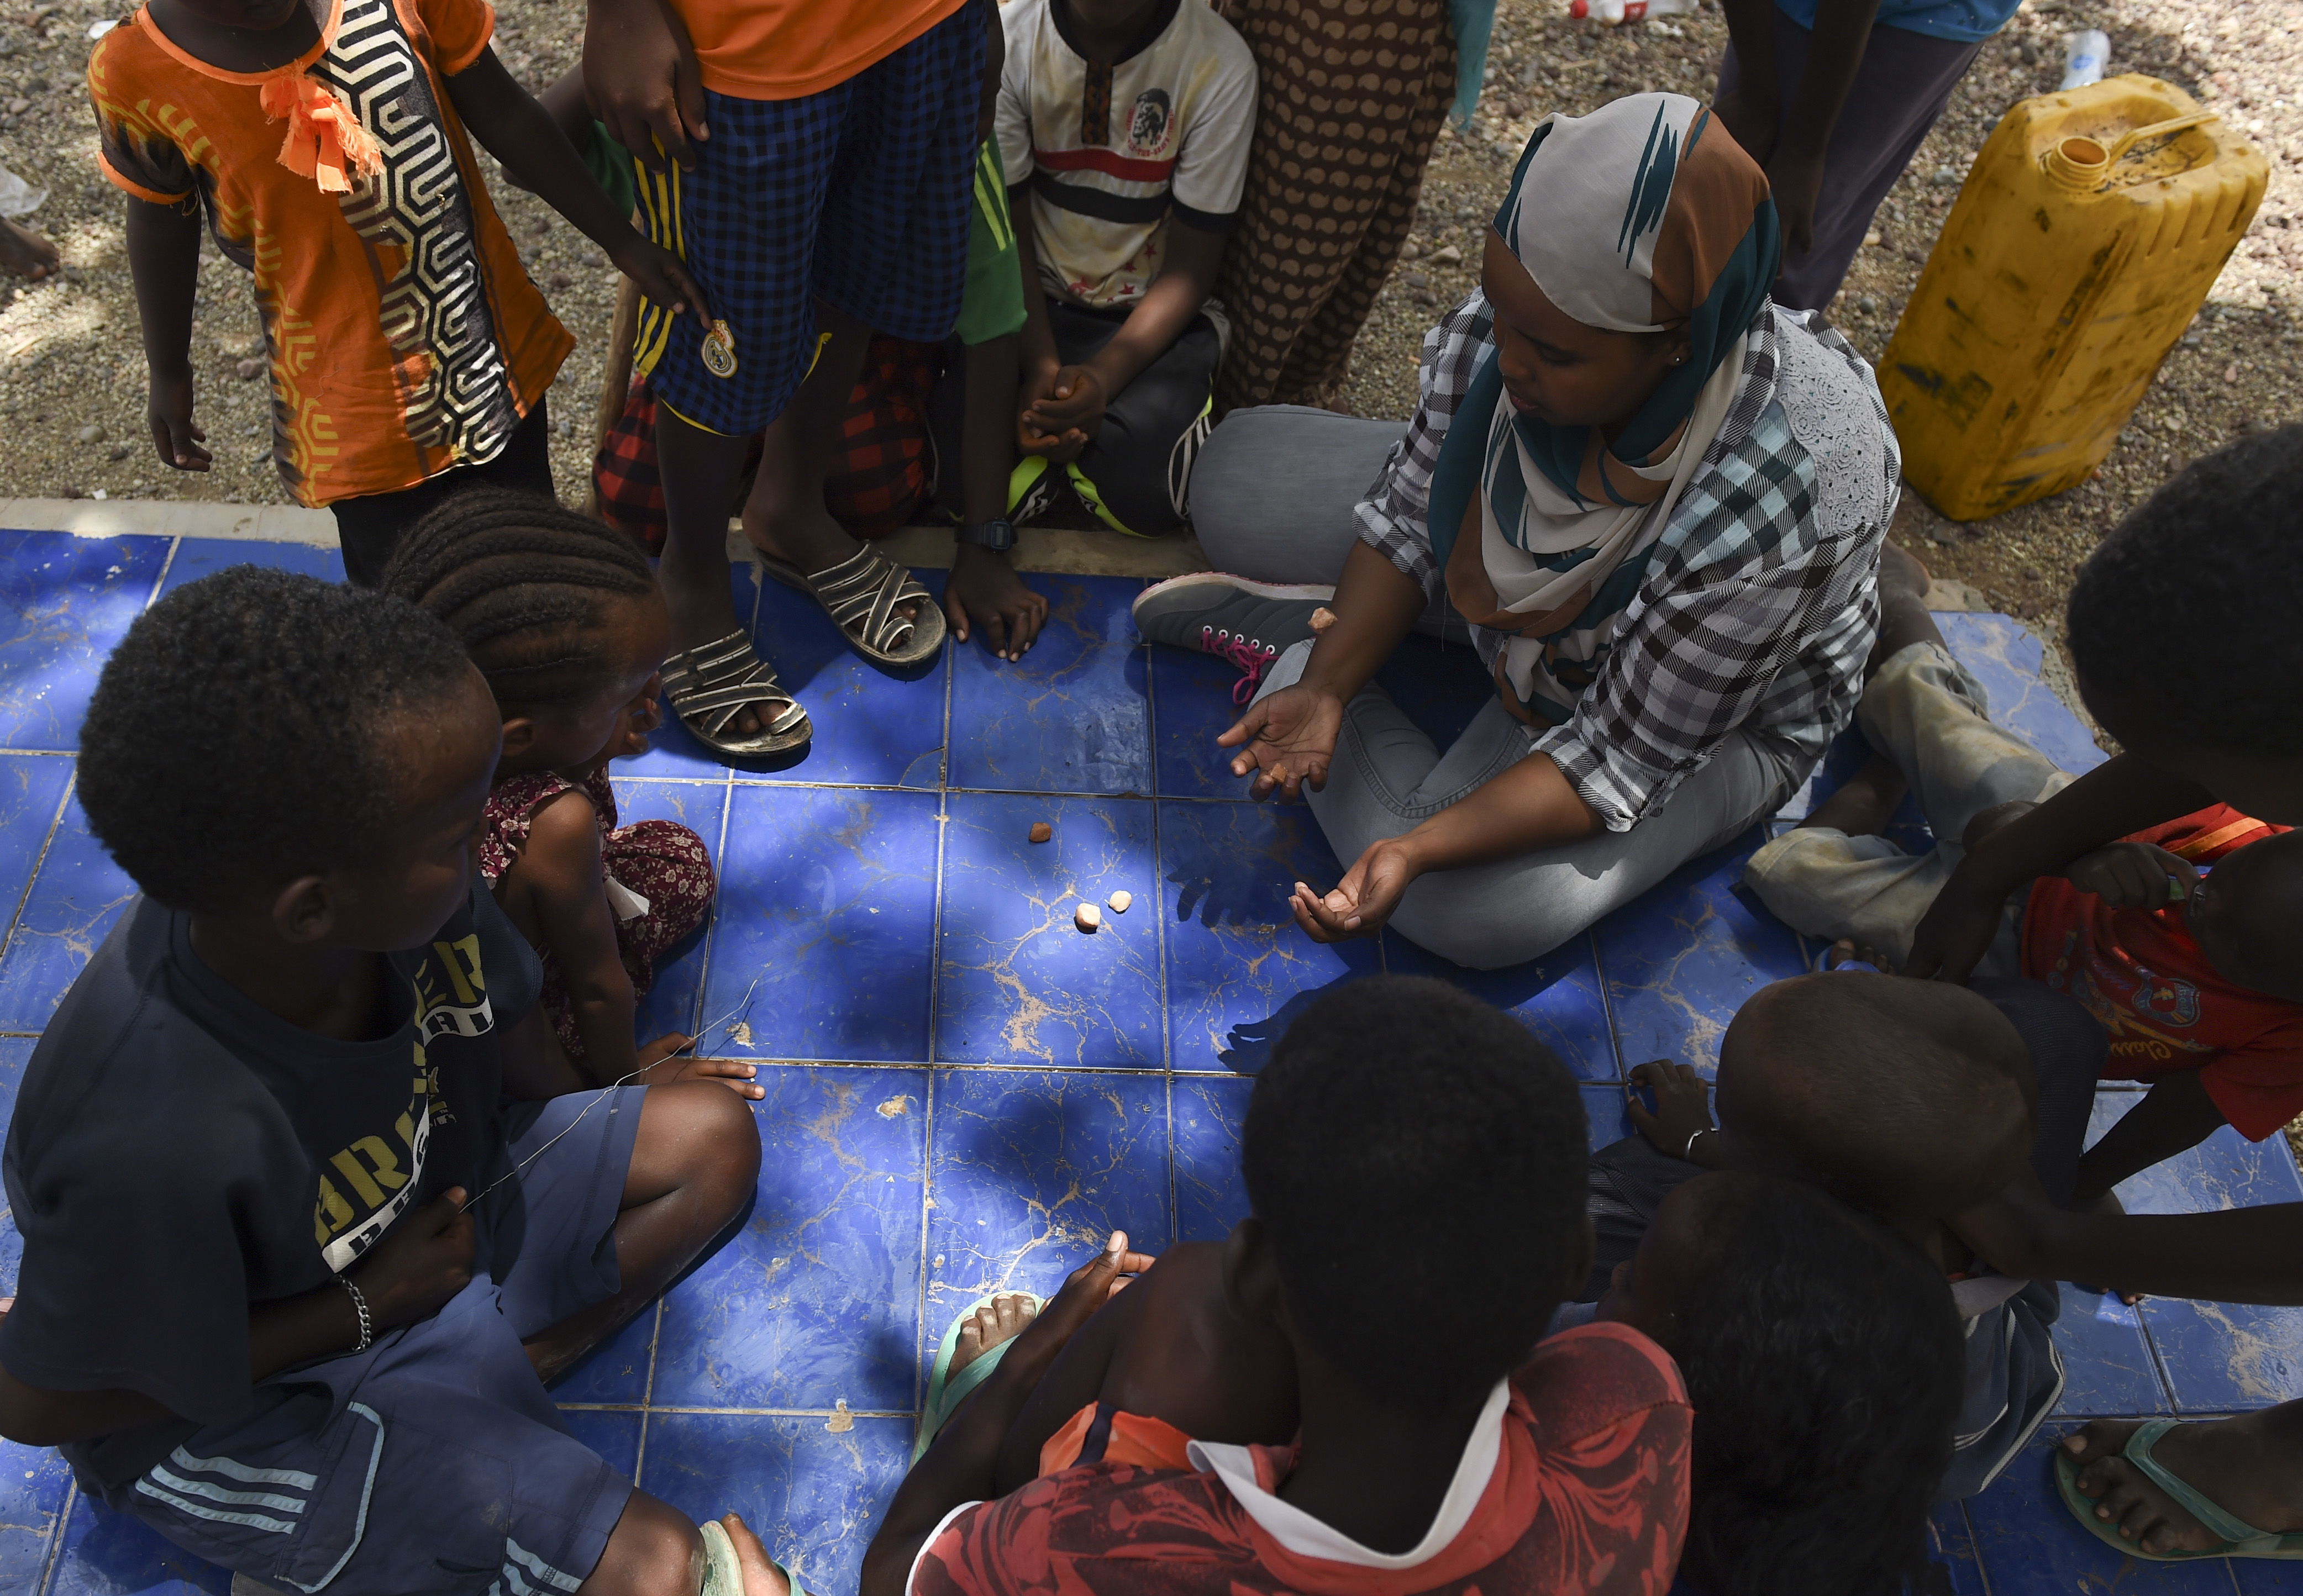 Fatouma Omar Guedi, a language interpreter, plays a game with several children in the village of Holhol, Djibouti, May 18, 2017. Language interpreters are essential to the success of civil affairs operations and act as liaisons between the military personnel and local key leaders in the east Africa region. (U.S. Air Force Photo by Eboni Prince)